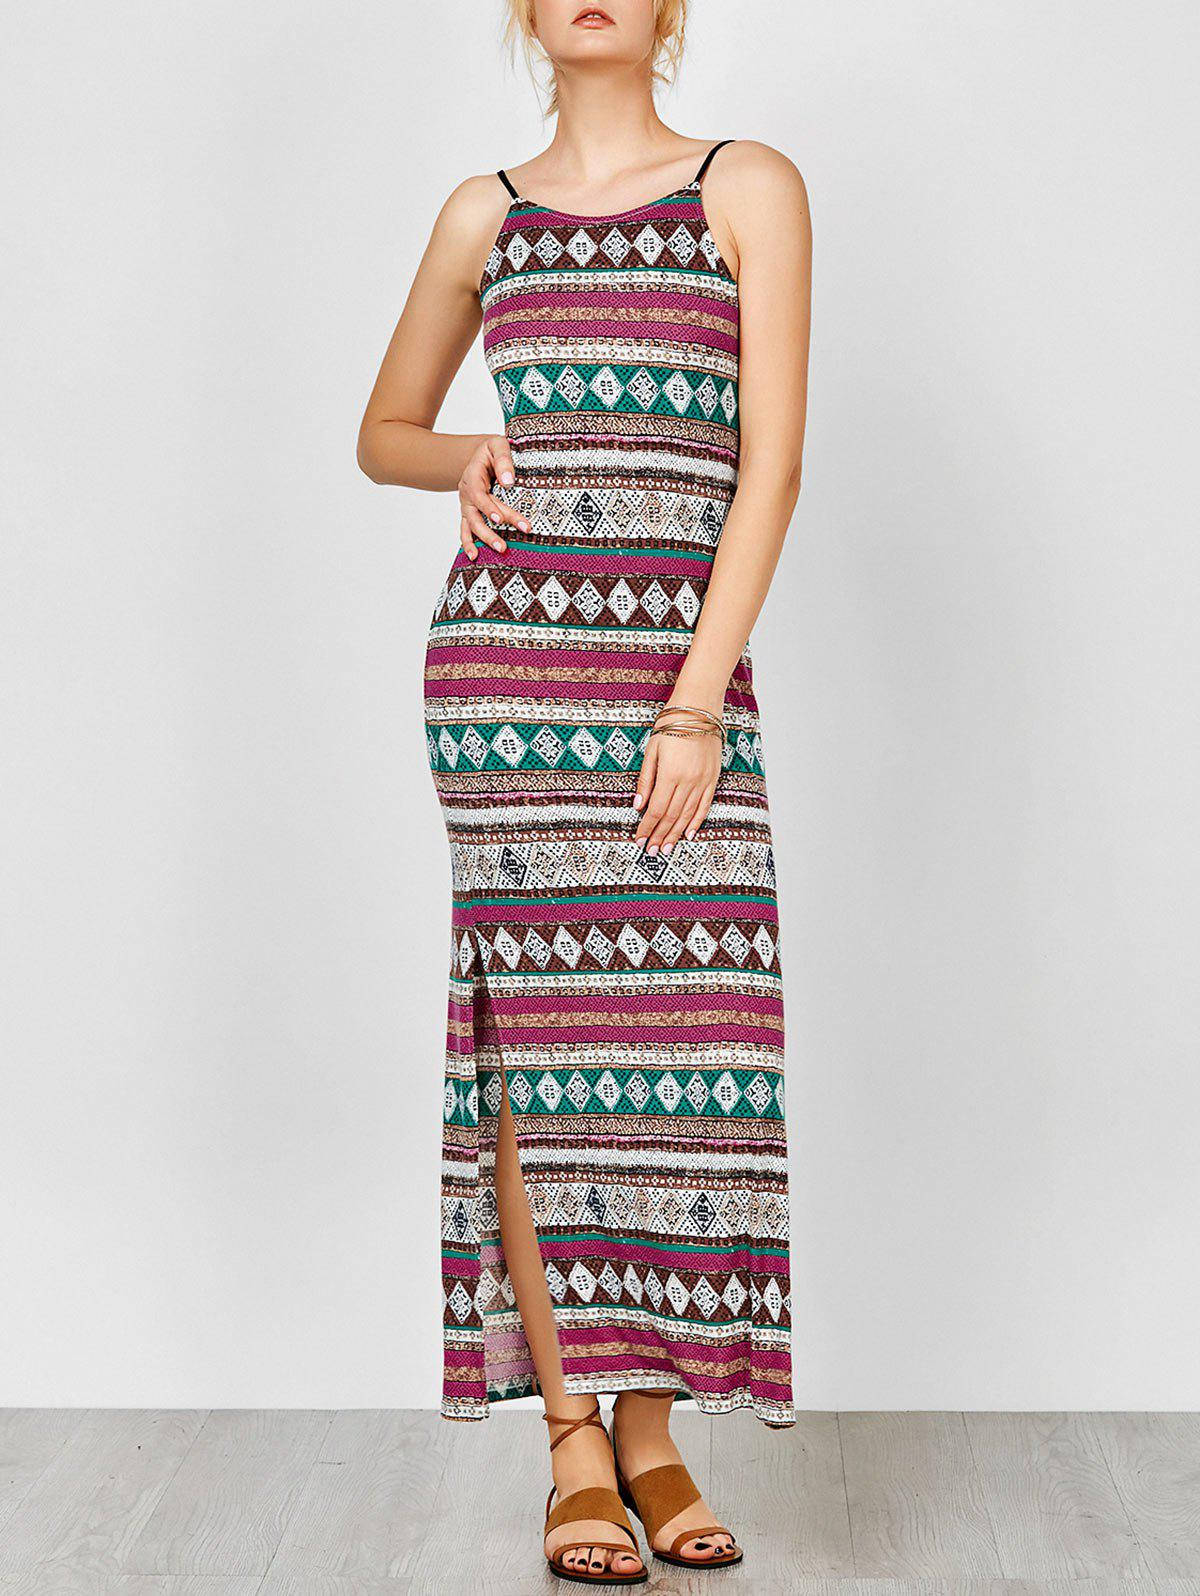 Spaghetti Strap Backless Maxi Bohemian Dress - COLORMIX M